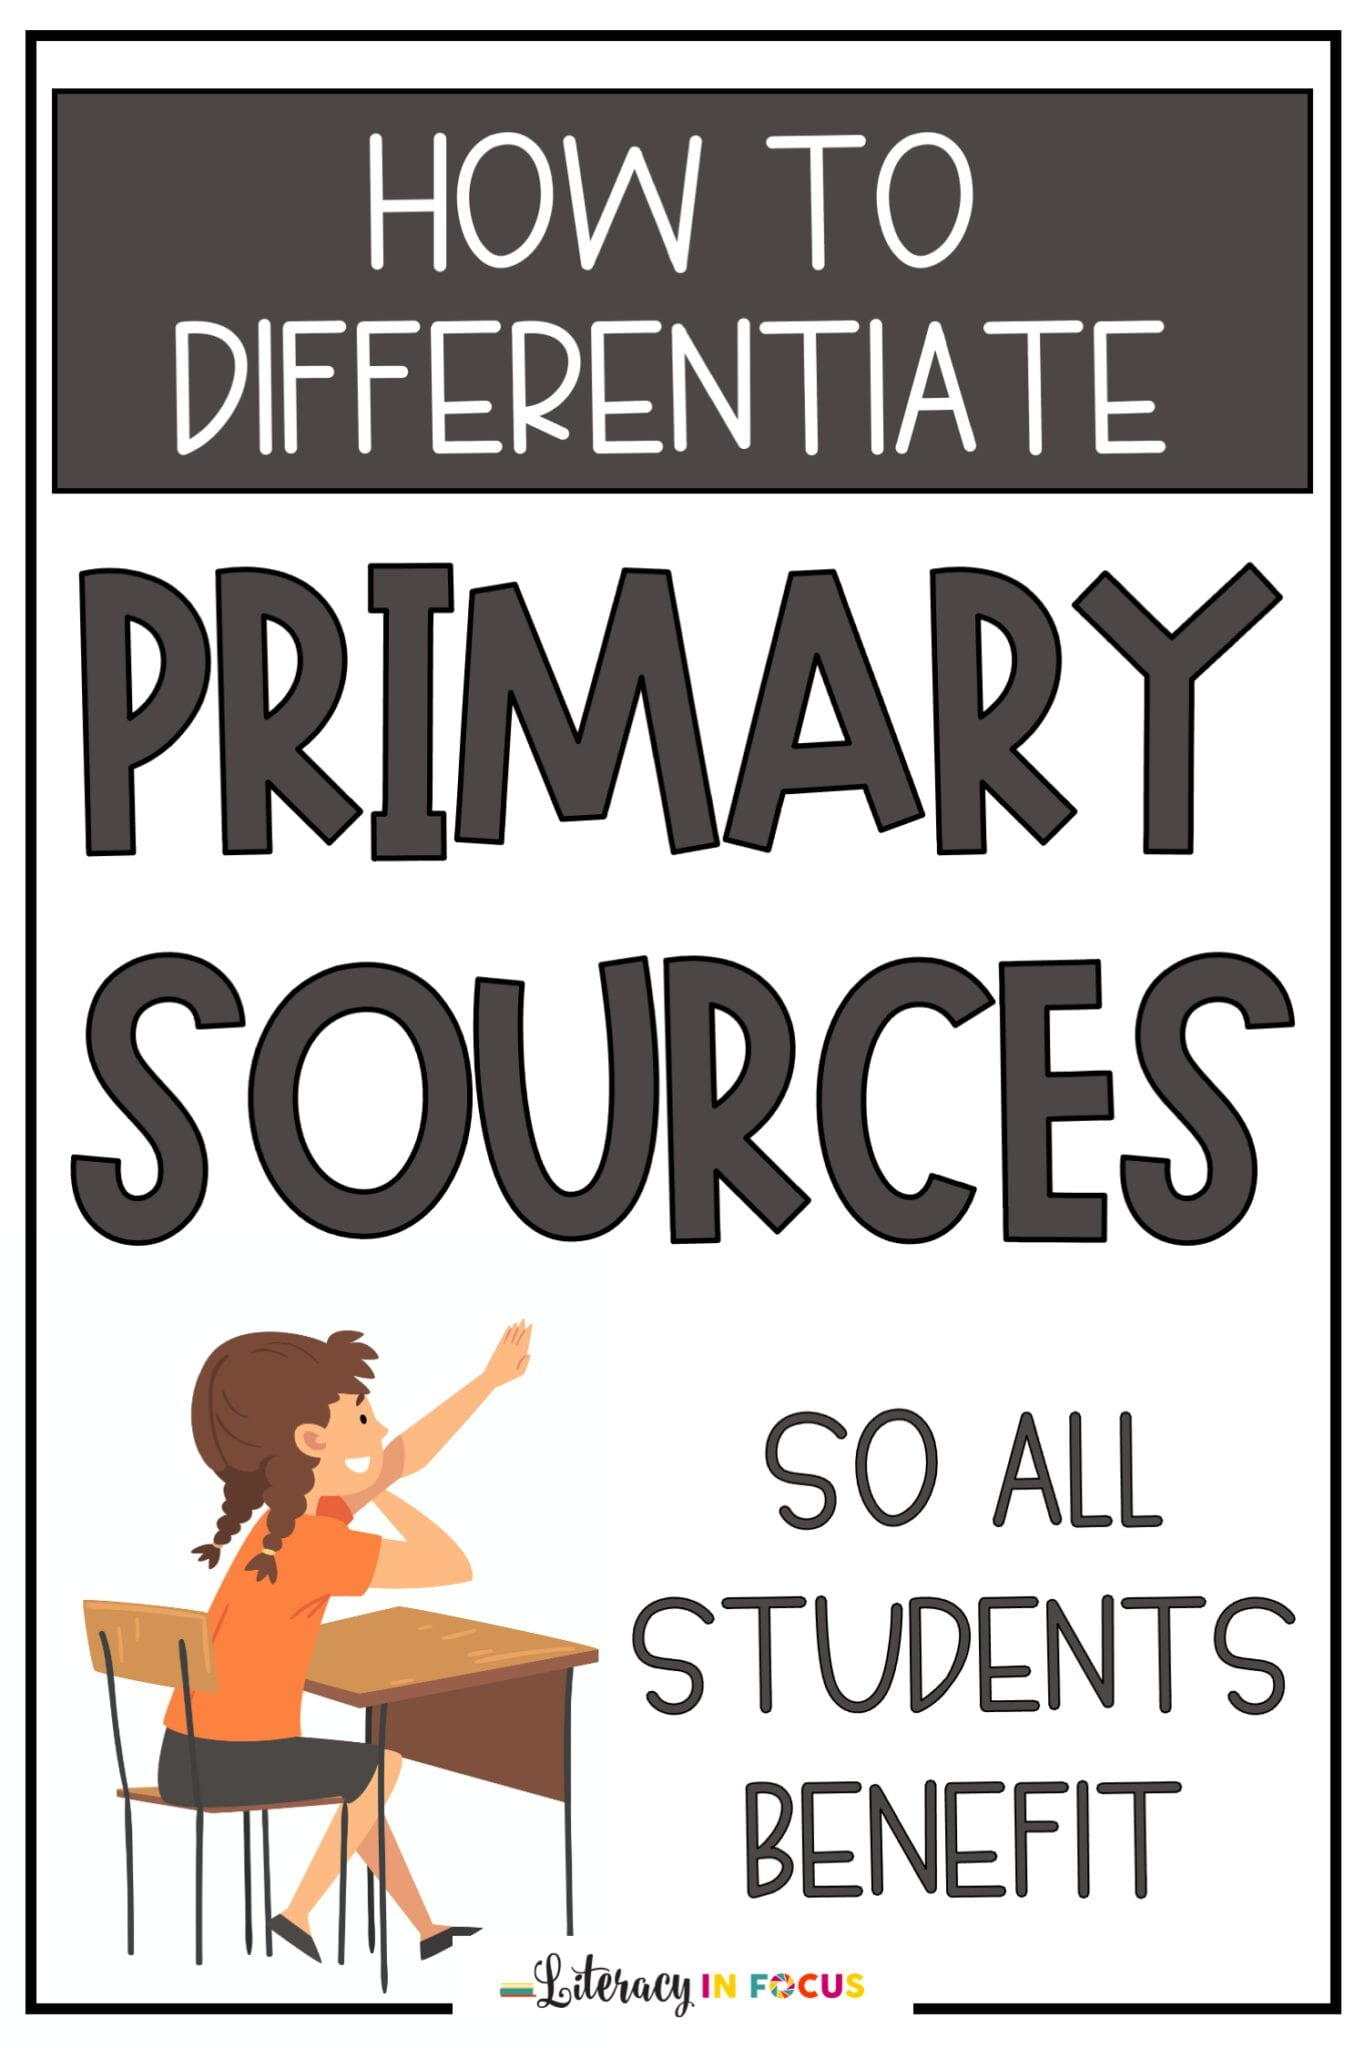 How to Differentiate Primary Sources